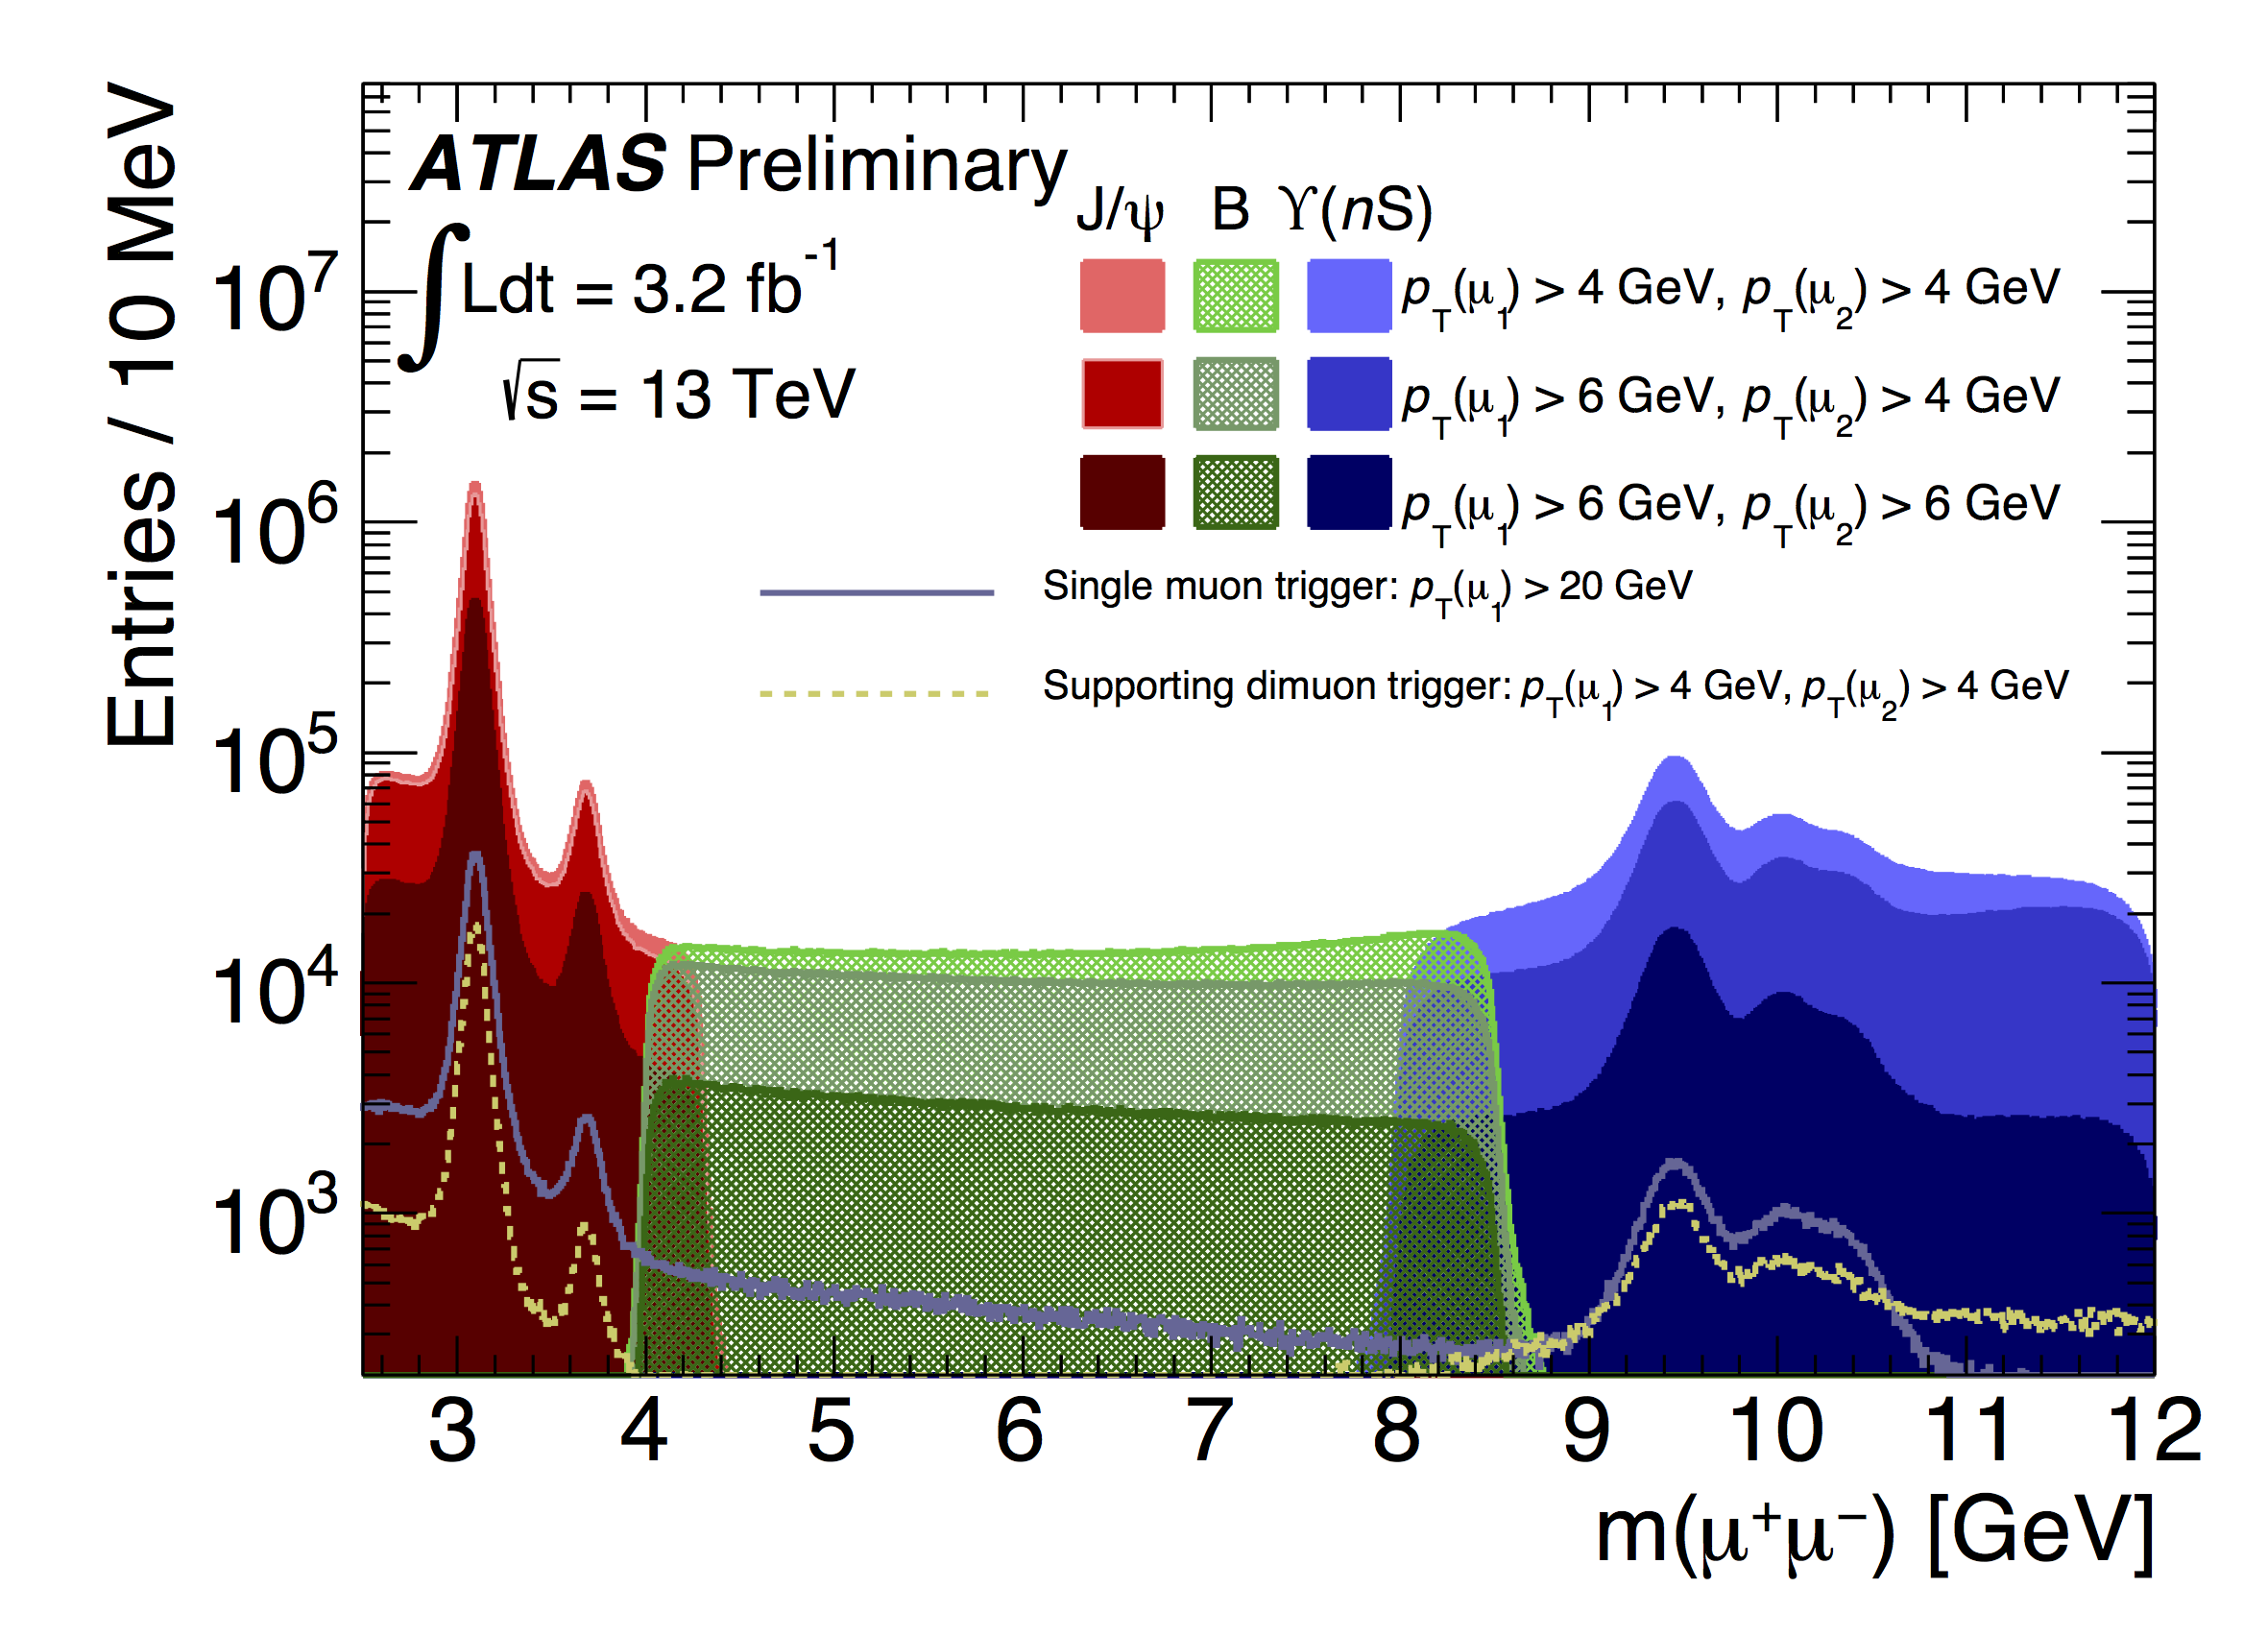 http://atlas.web.cern.ch/Atlas/GROUPS/PHYSICS/BPHYSICS/PUBLIC/ATL-COM-DAQ-2016-005_dimuon_2015_mass_dist.png